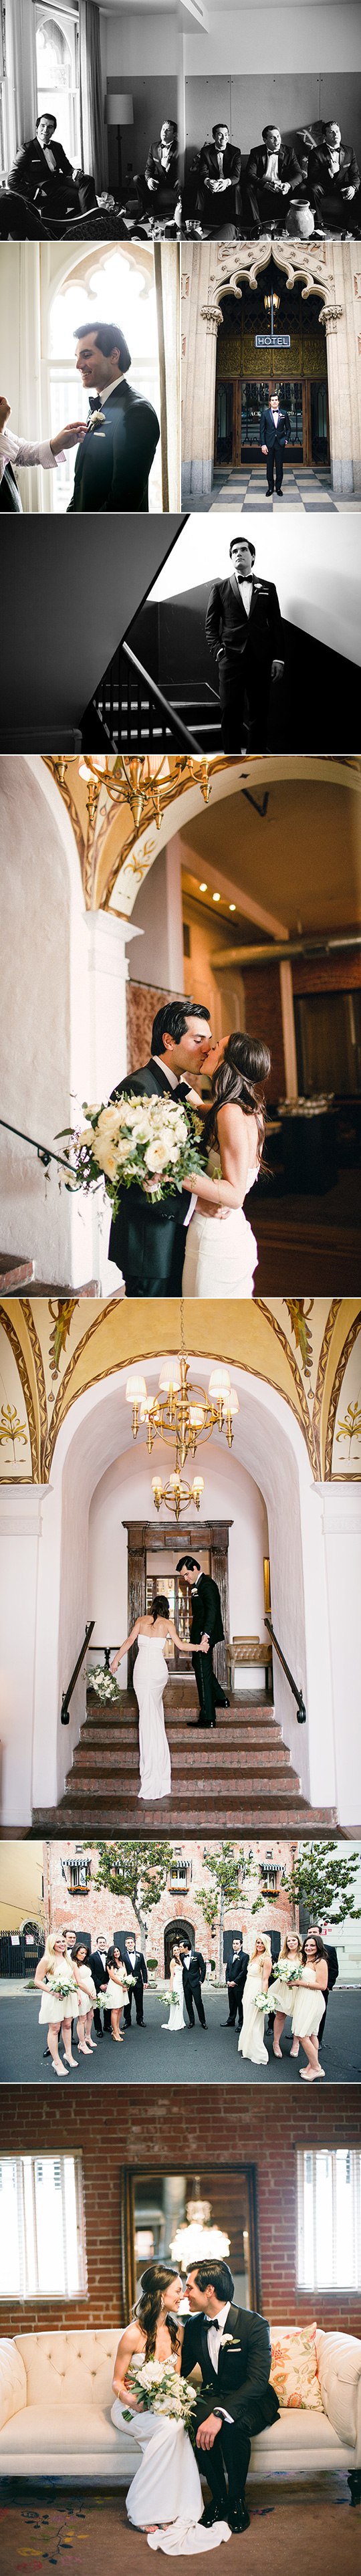 Minted Real Wedding / Carondelet House, Los Angeles